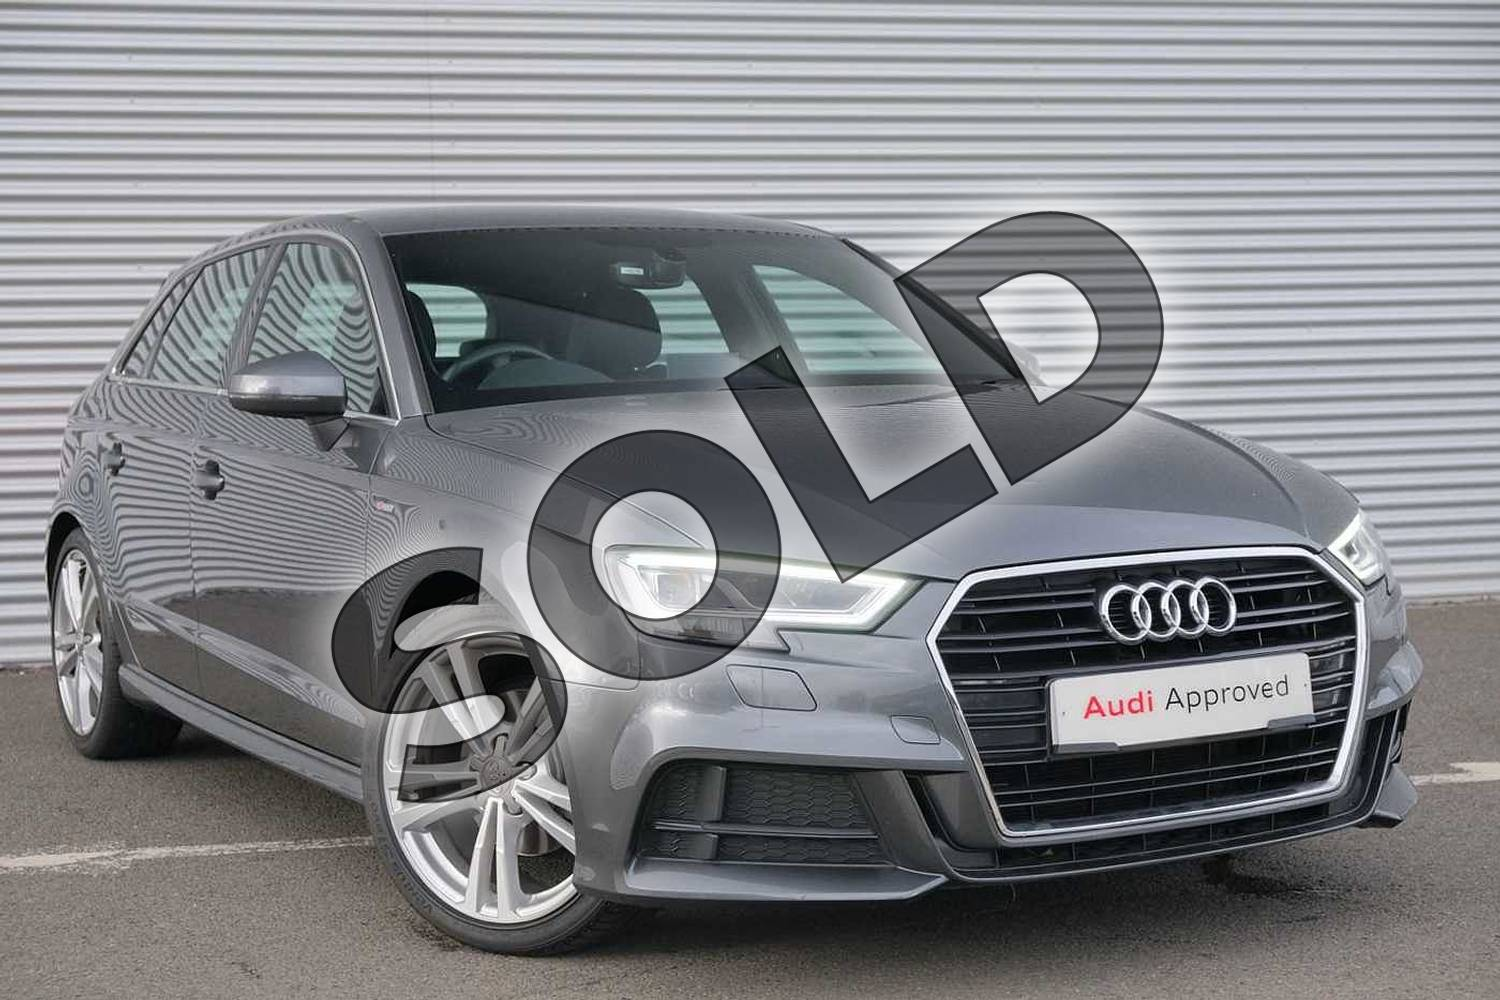 Audi A3 1 5 Tfsi S Line 5dr S Tronic For Sale At Listers Volkswagen Coventry Ref 001 U061454